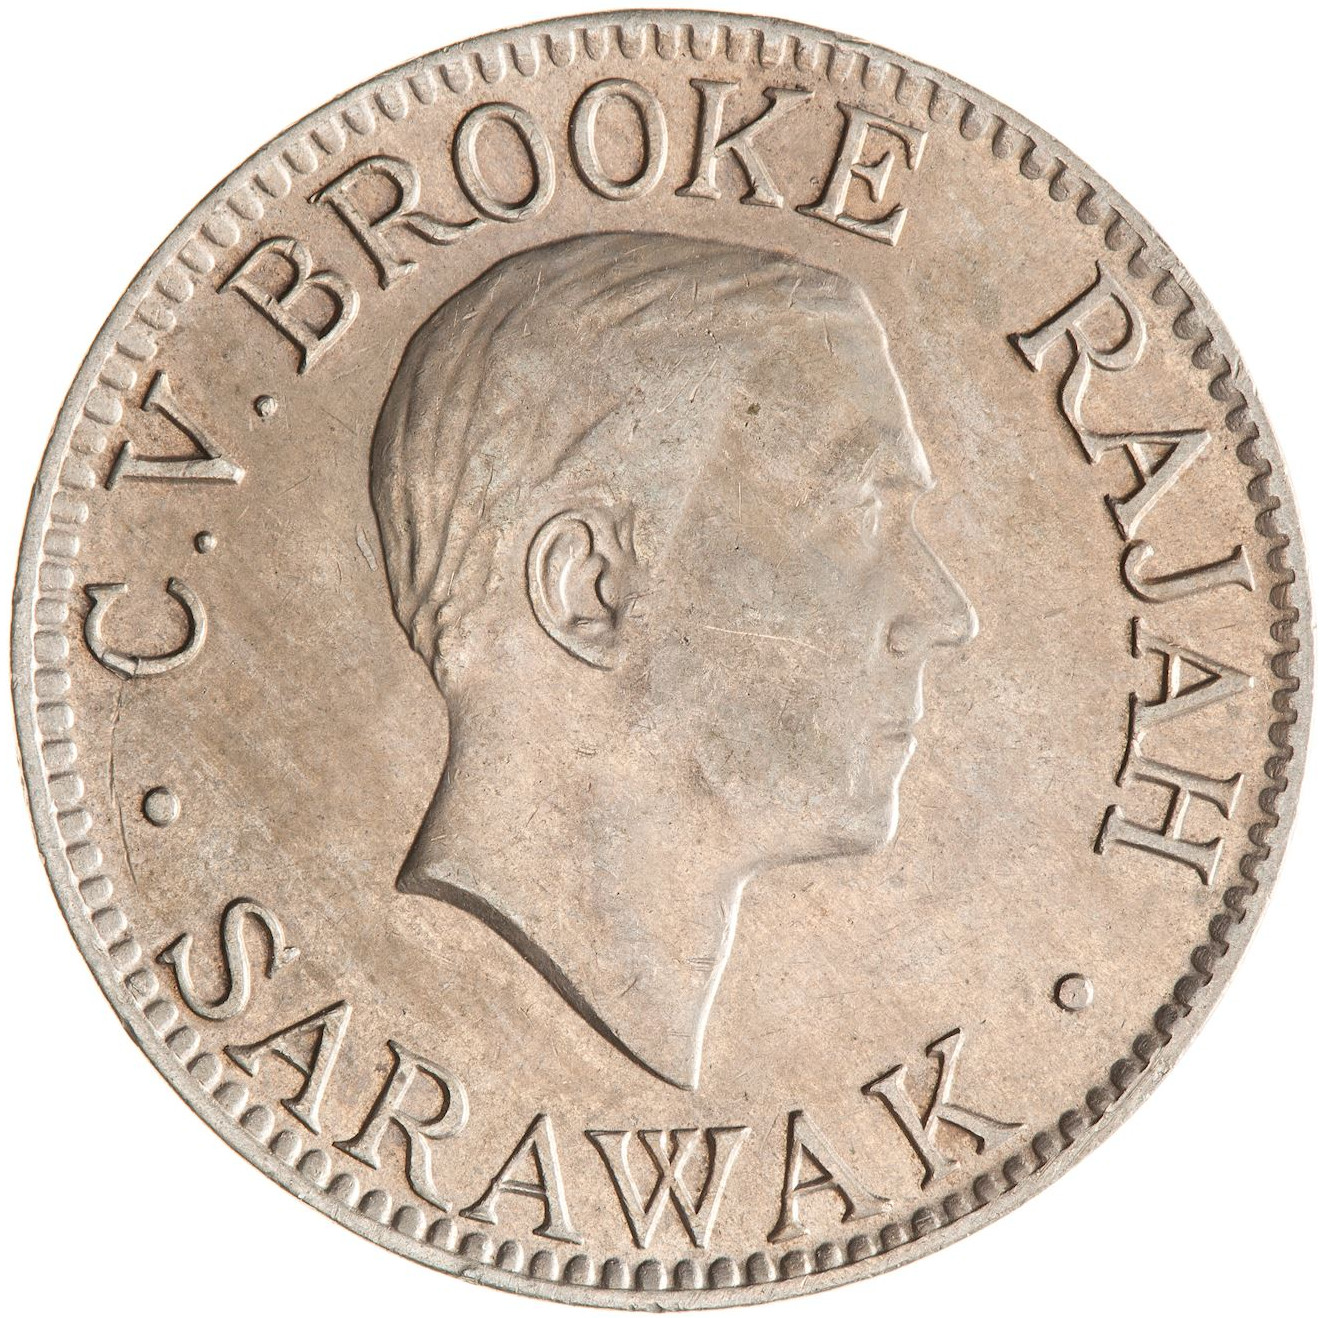 Ten Cents: Photo Coin - 10 Cents, Sarawak, 1934